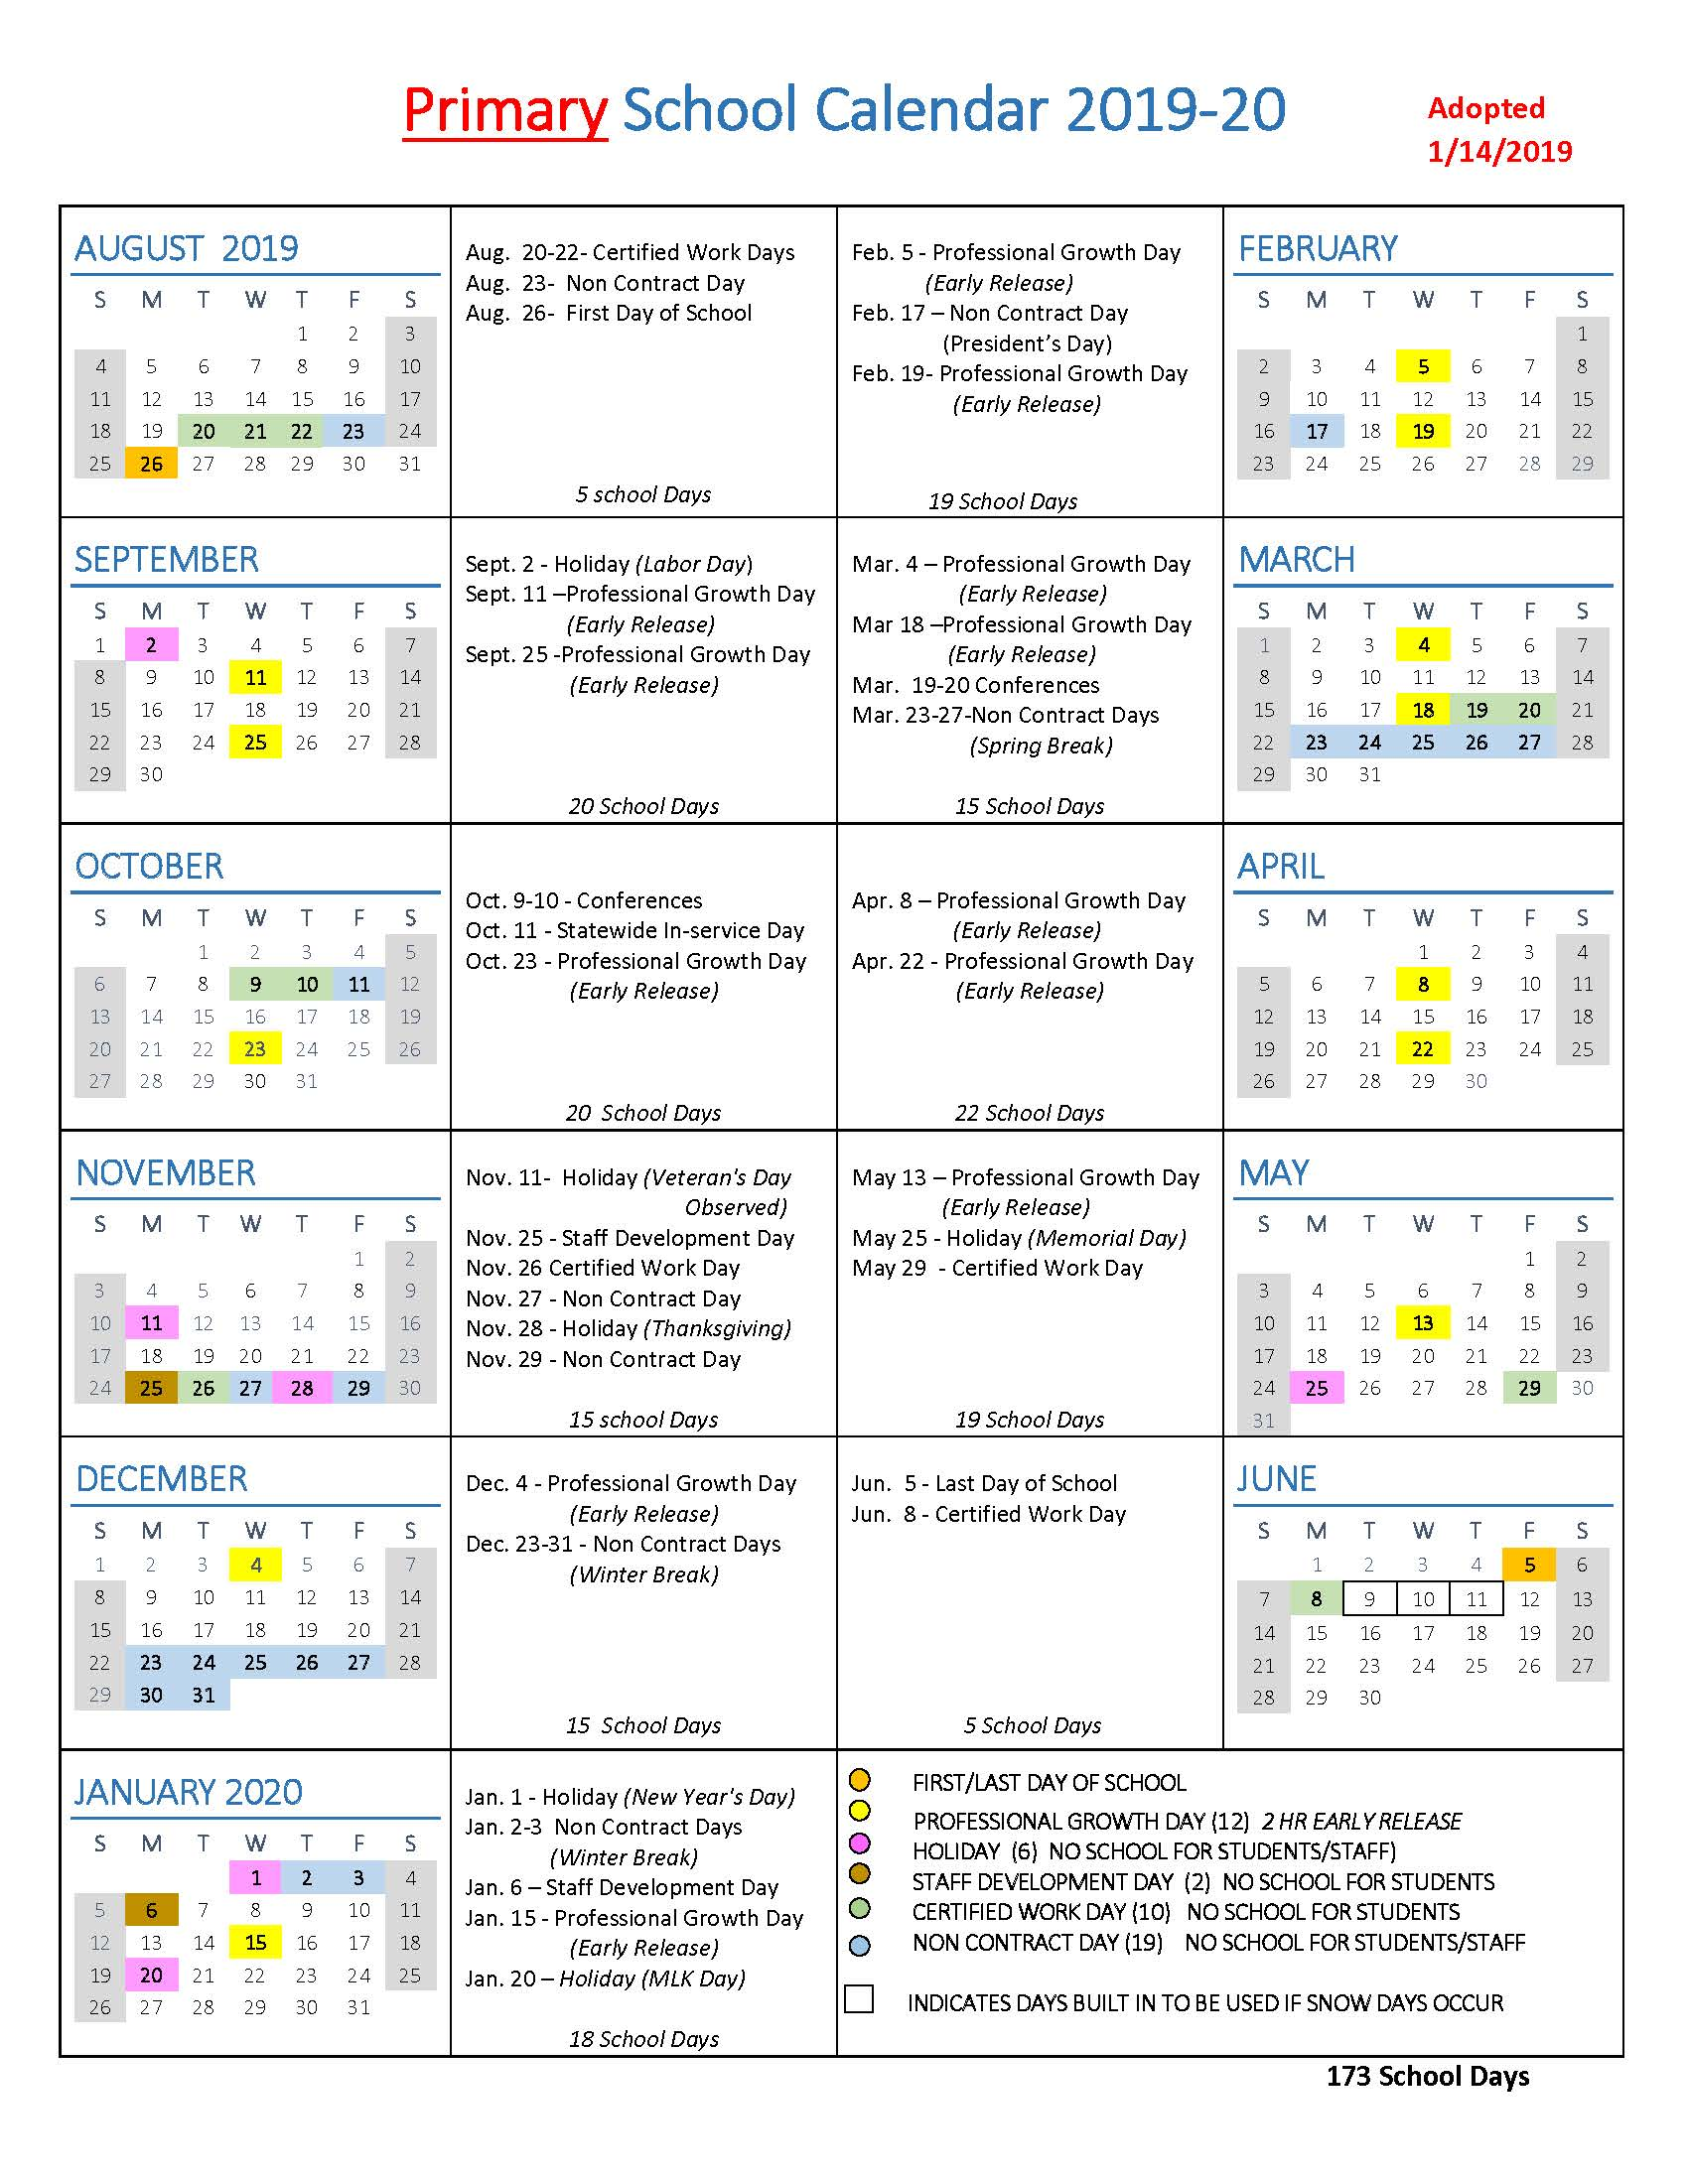 School Calendar 2014 To 2020 School Year Calendars / WLWV School Calendars